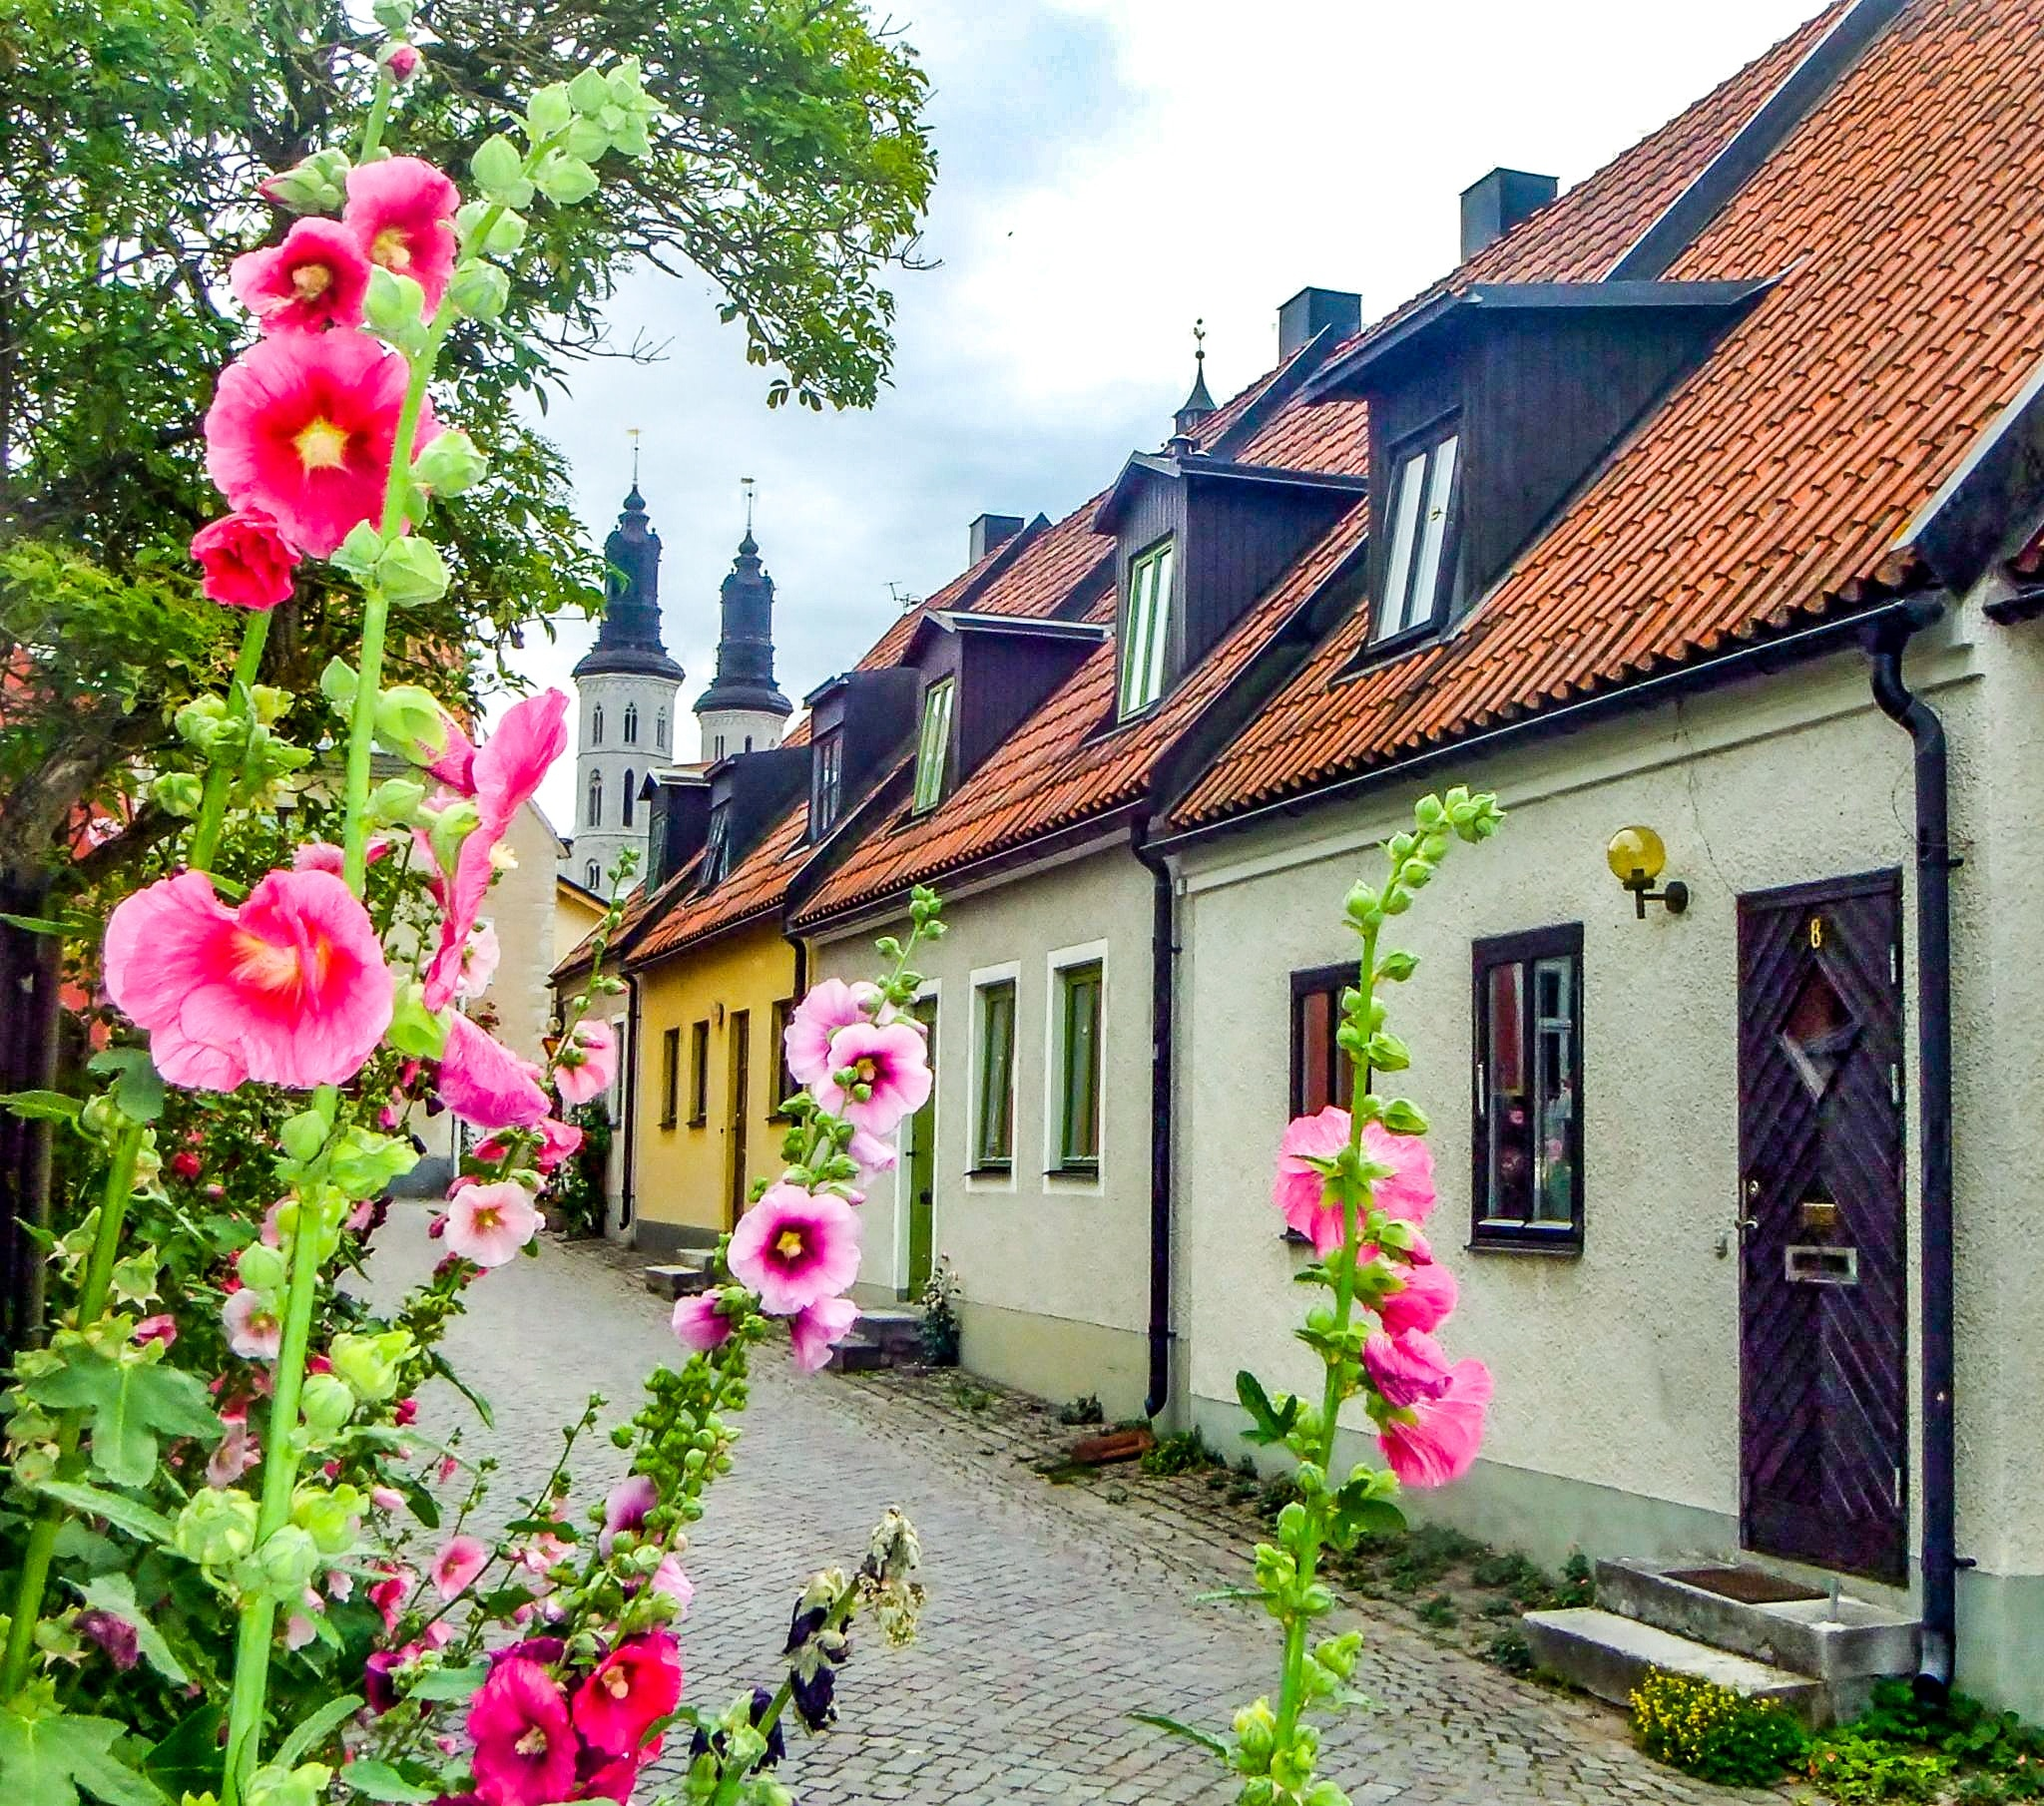 East Visby, Visby, Gotland County, Sweden